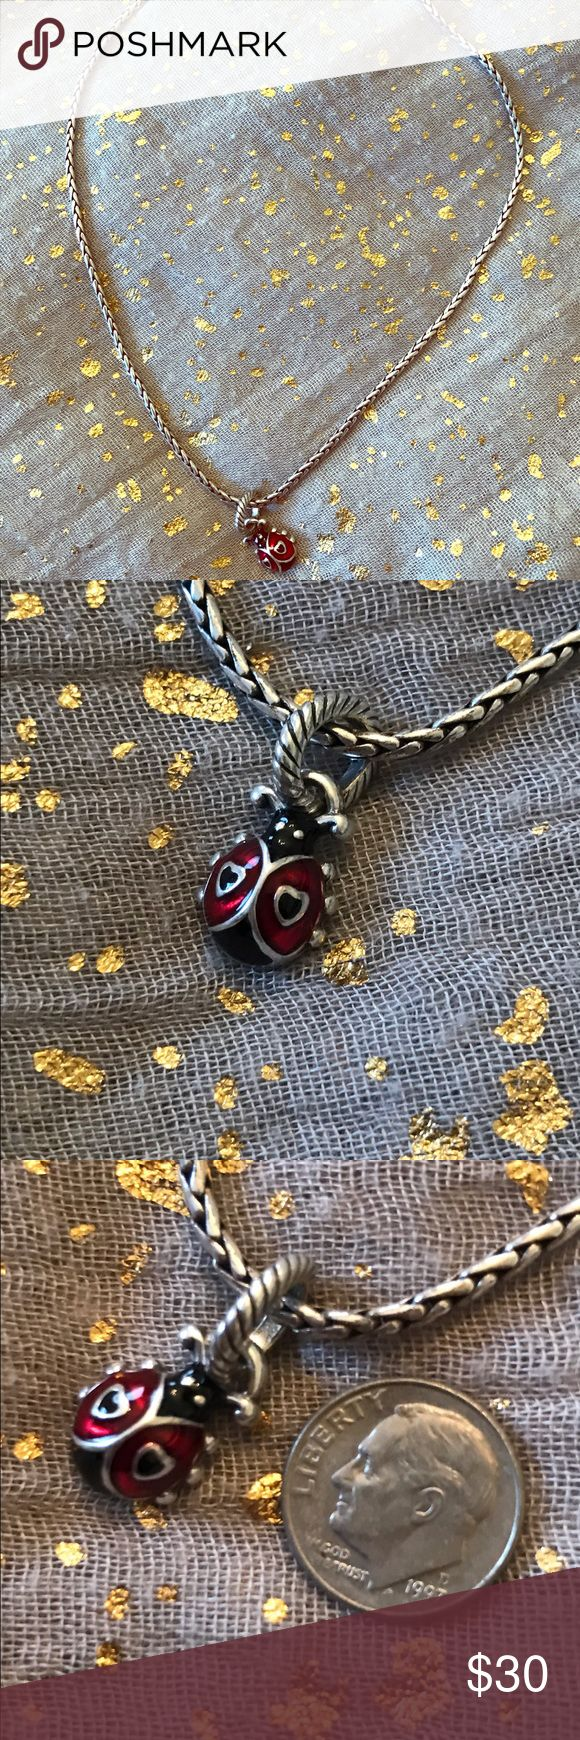 "Brighton 20"" Ladybug Necklace Brighton 20"" Ladybug Necklace, Silver Necklace with silver ladybug charm, 20"" including clasp, Good Condition, Also included GWP: Brighton 10"" Silver Ladybug Anklet Brighton Jewelry Necklaces"